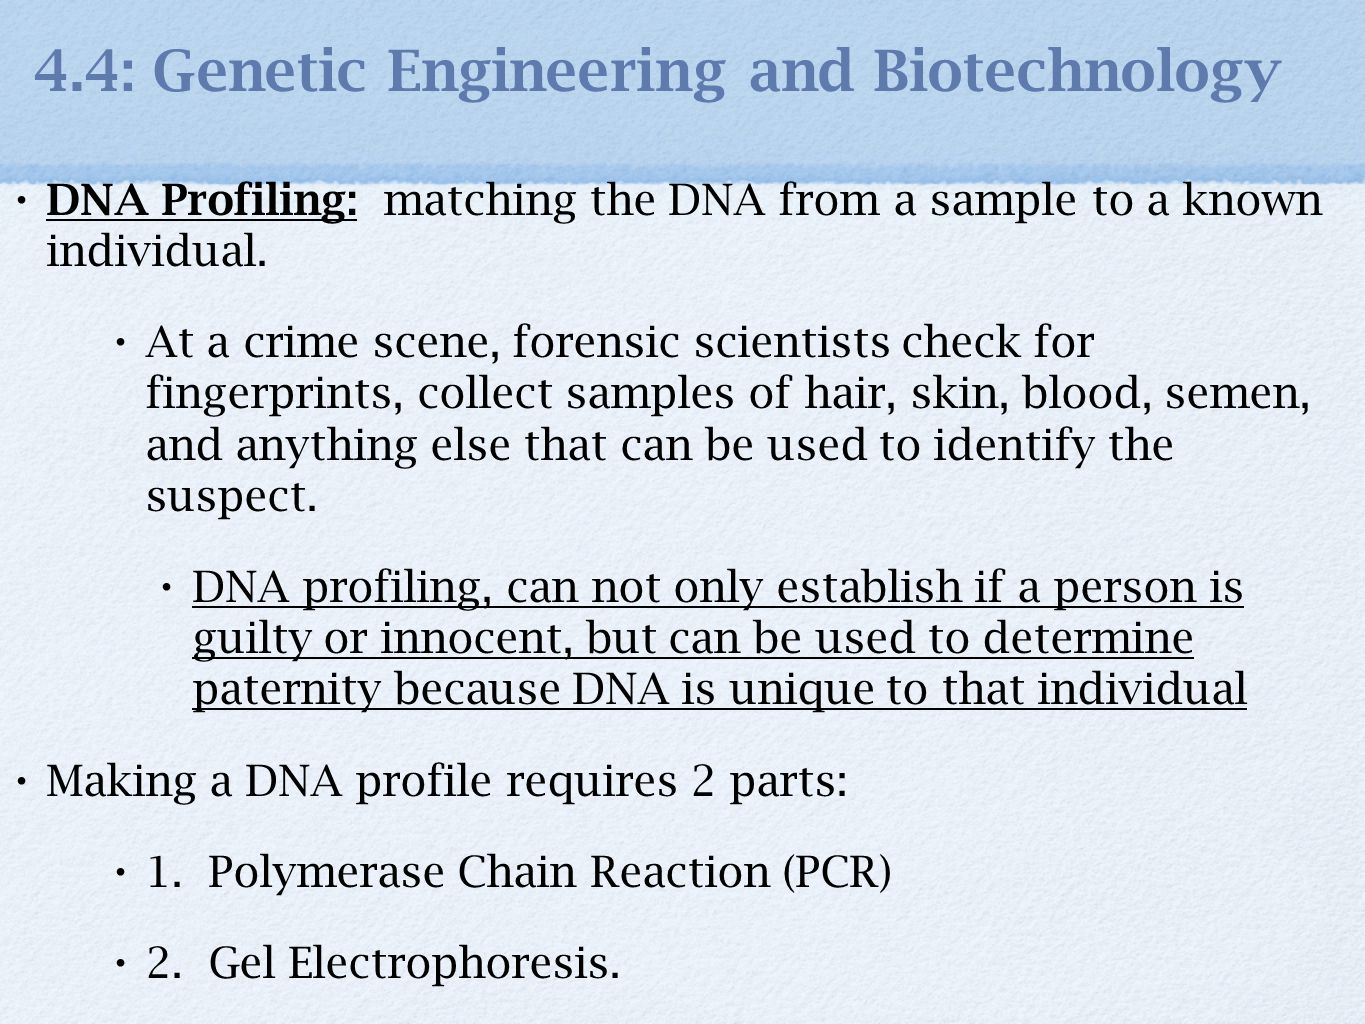 an essay on genetic engineering and dna profiling Dna profiling is a way of establishing identity it is used in a variety of ways, such as establishing proof of paternity or finding out whether twins are fraternal or identical critics point out that dna profiles are vulnerable to contamination errors, and invasion of privacy.